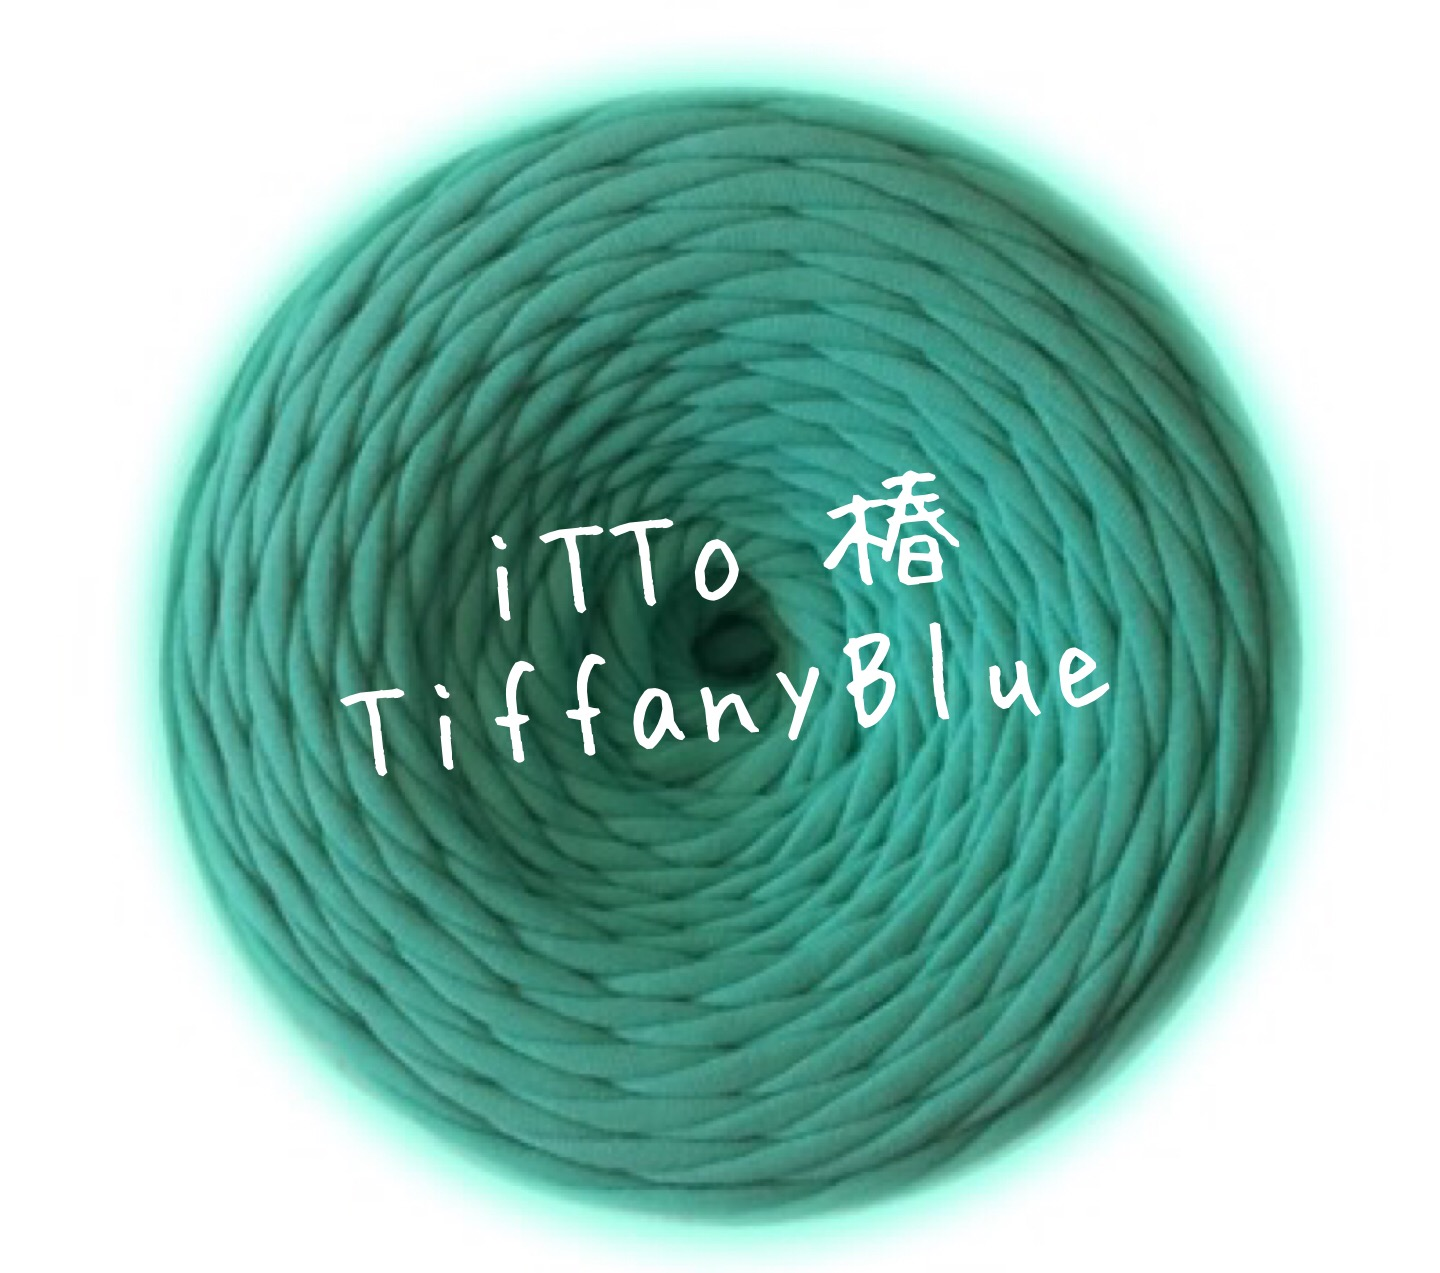 iTTo 椿 Tiffany Blue